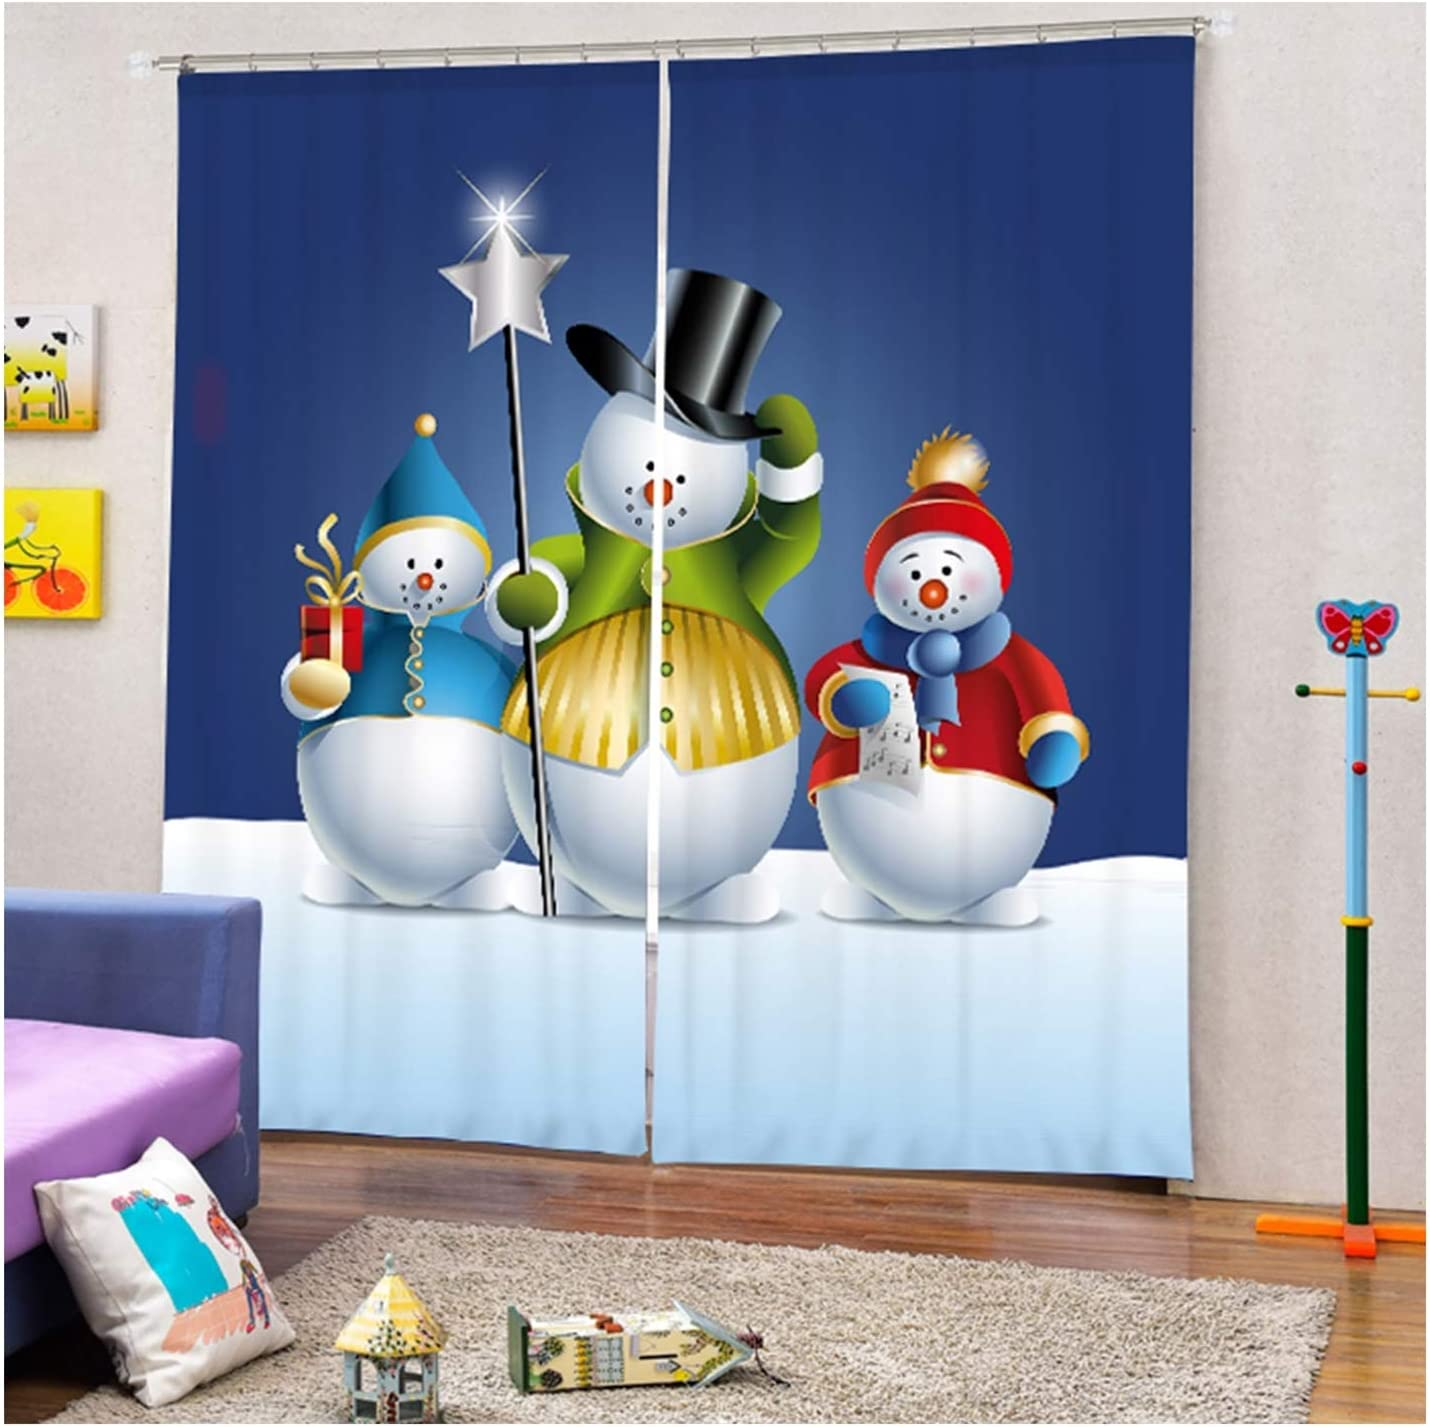 Daesar Curtains Living Room Trust and Selling and selling Bedroom Kitchen Curtai Blackout